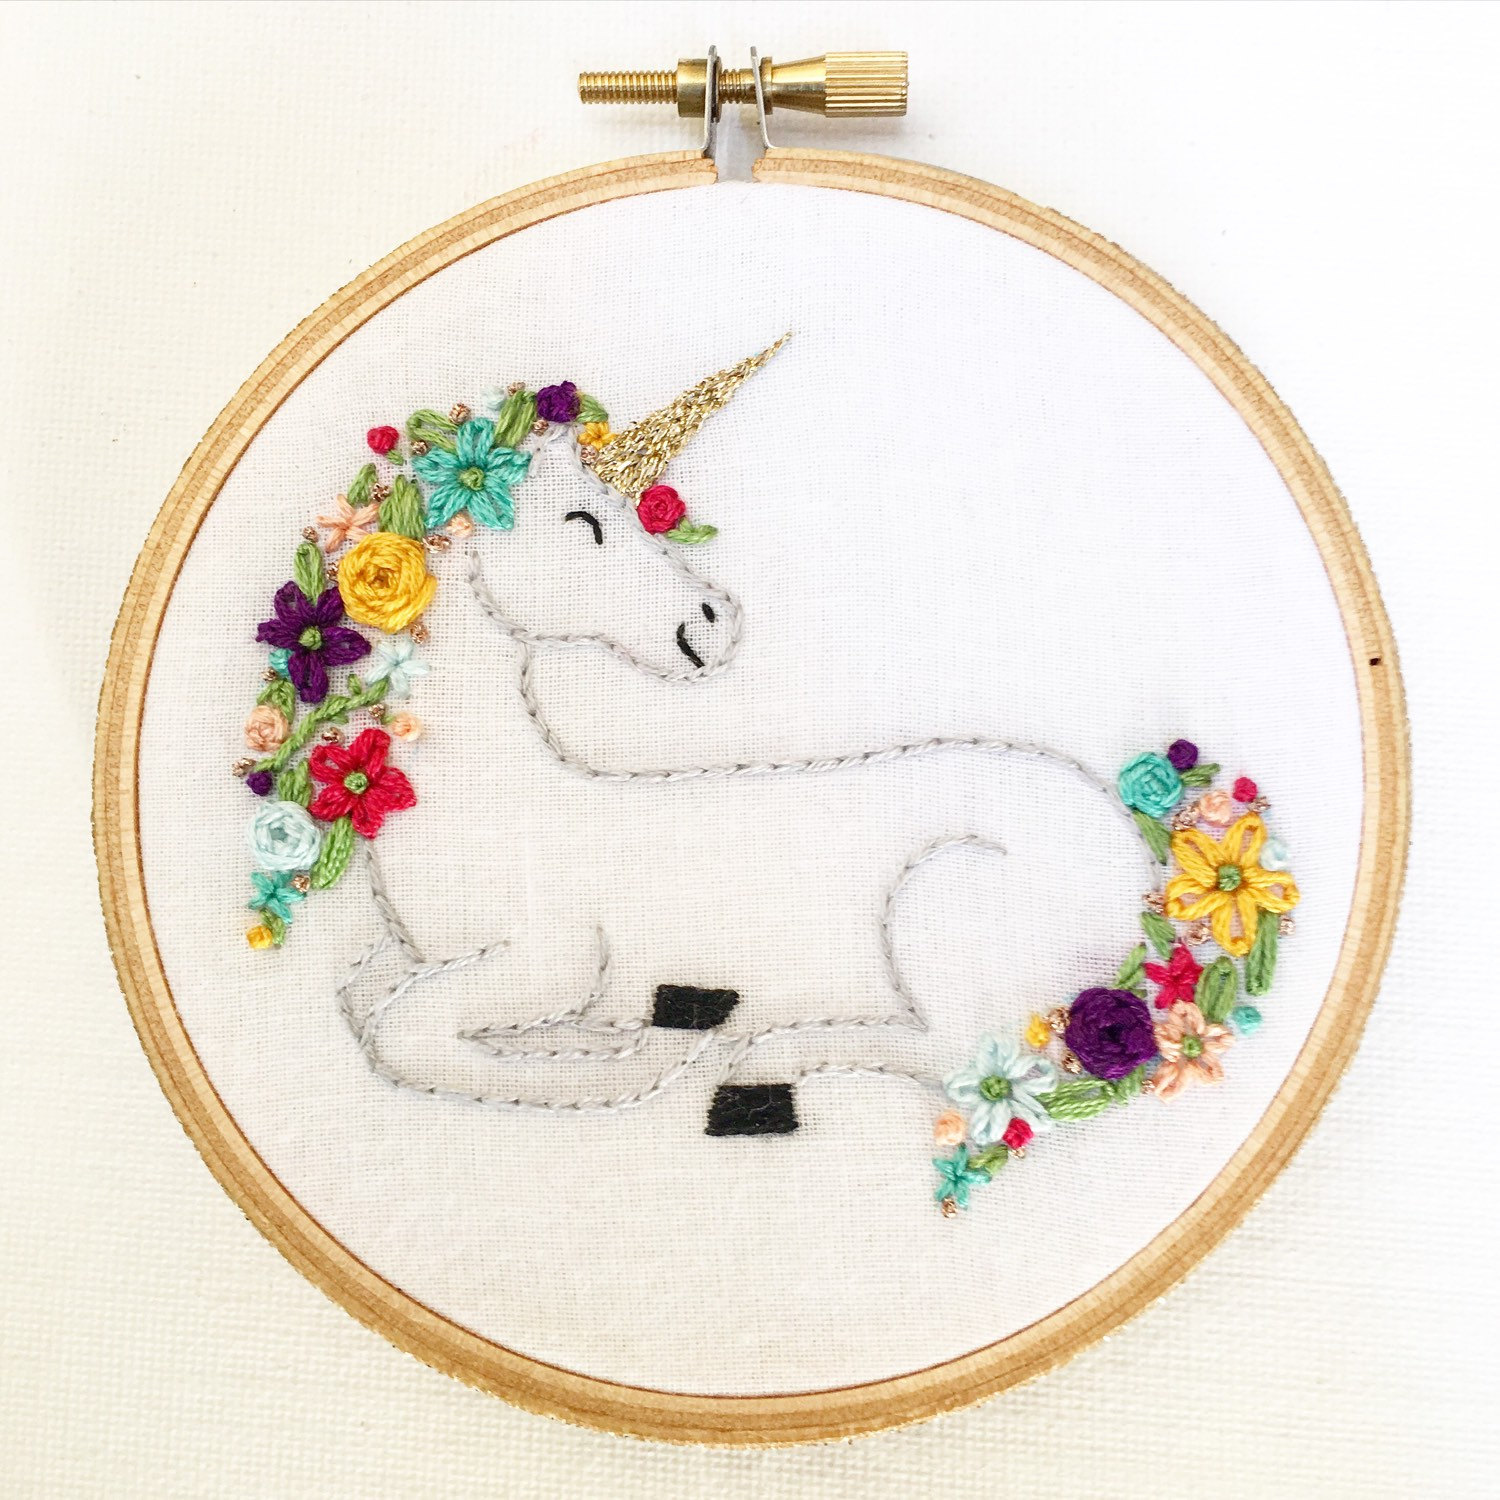 Marvelous unicorn embroidery hoop art